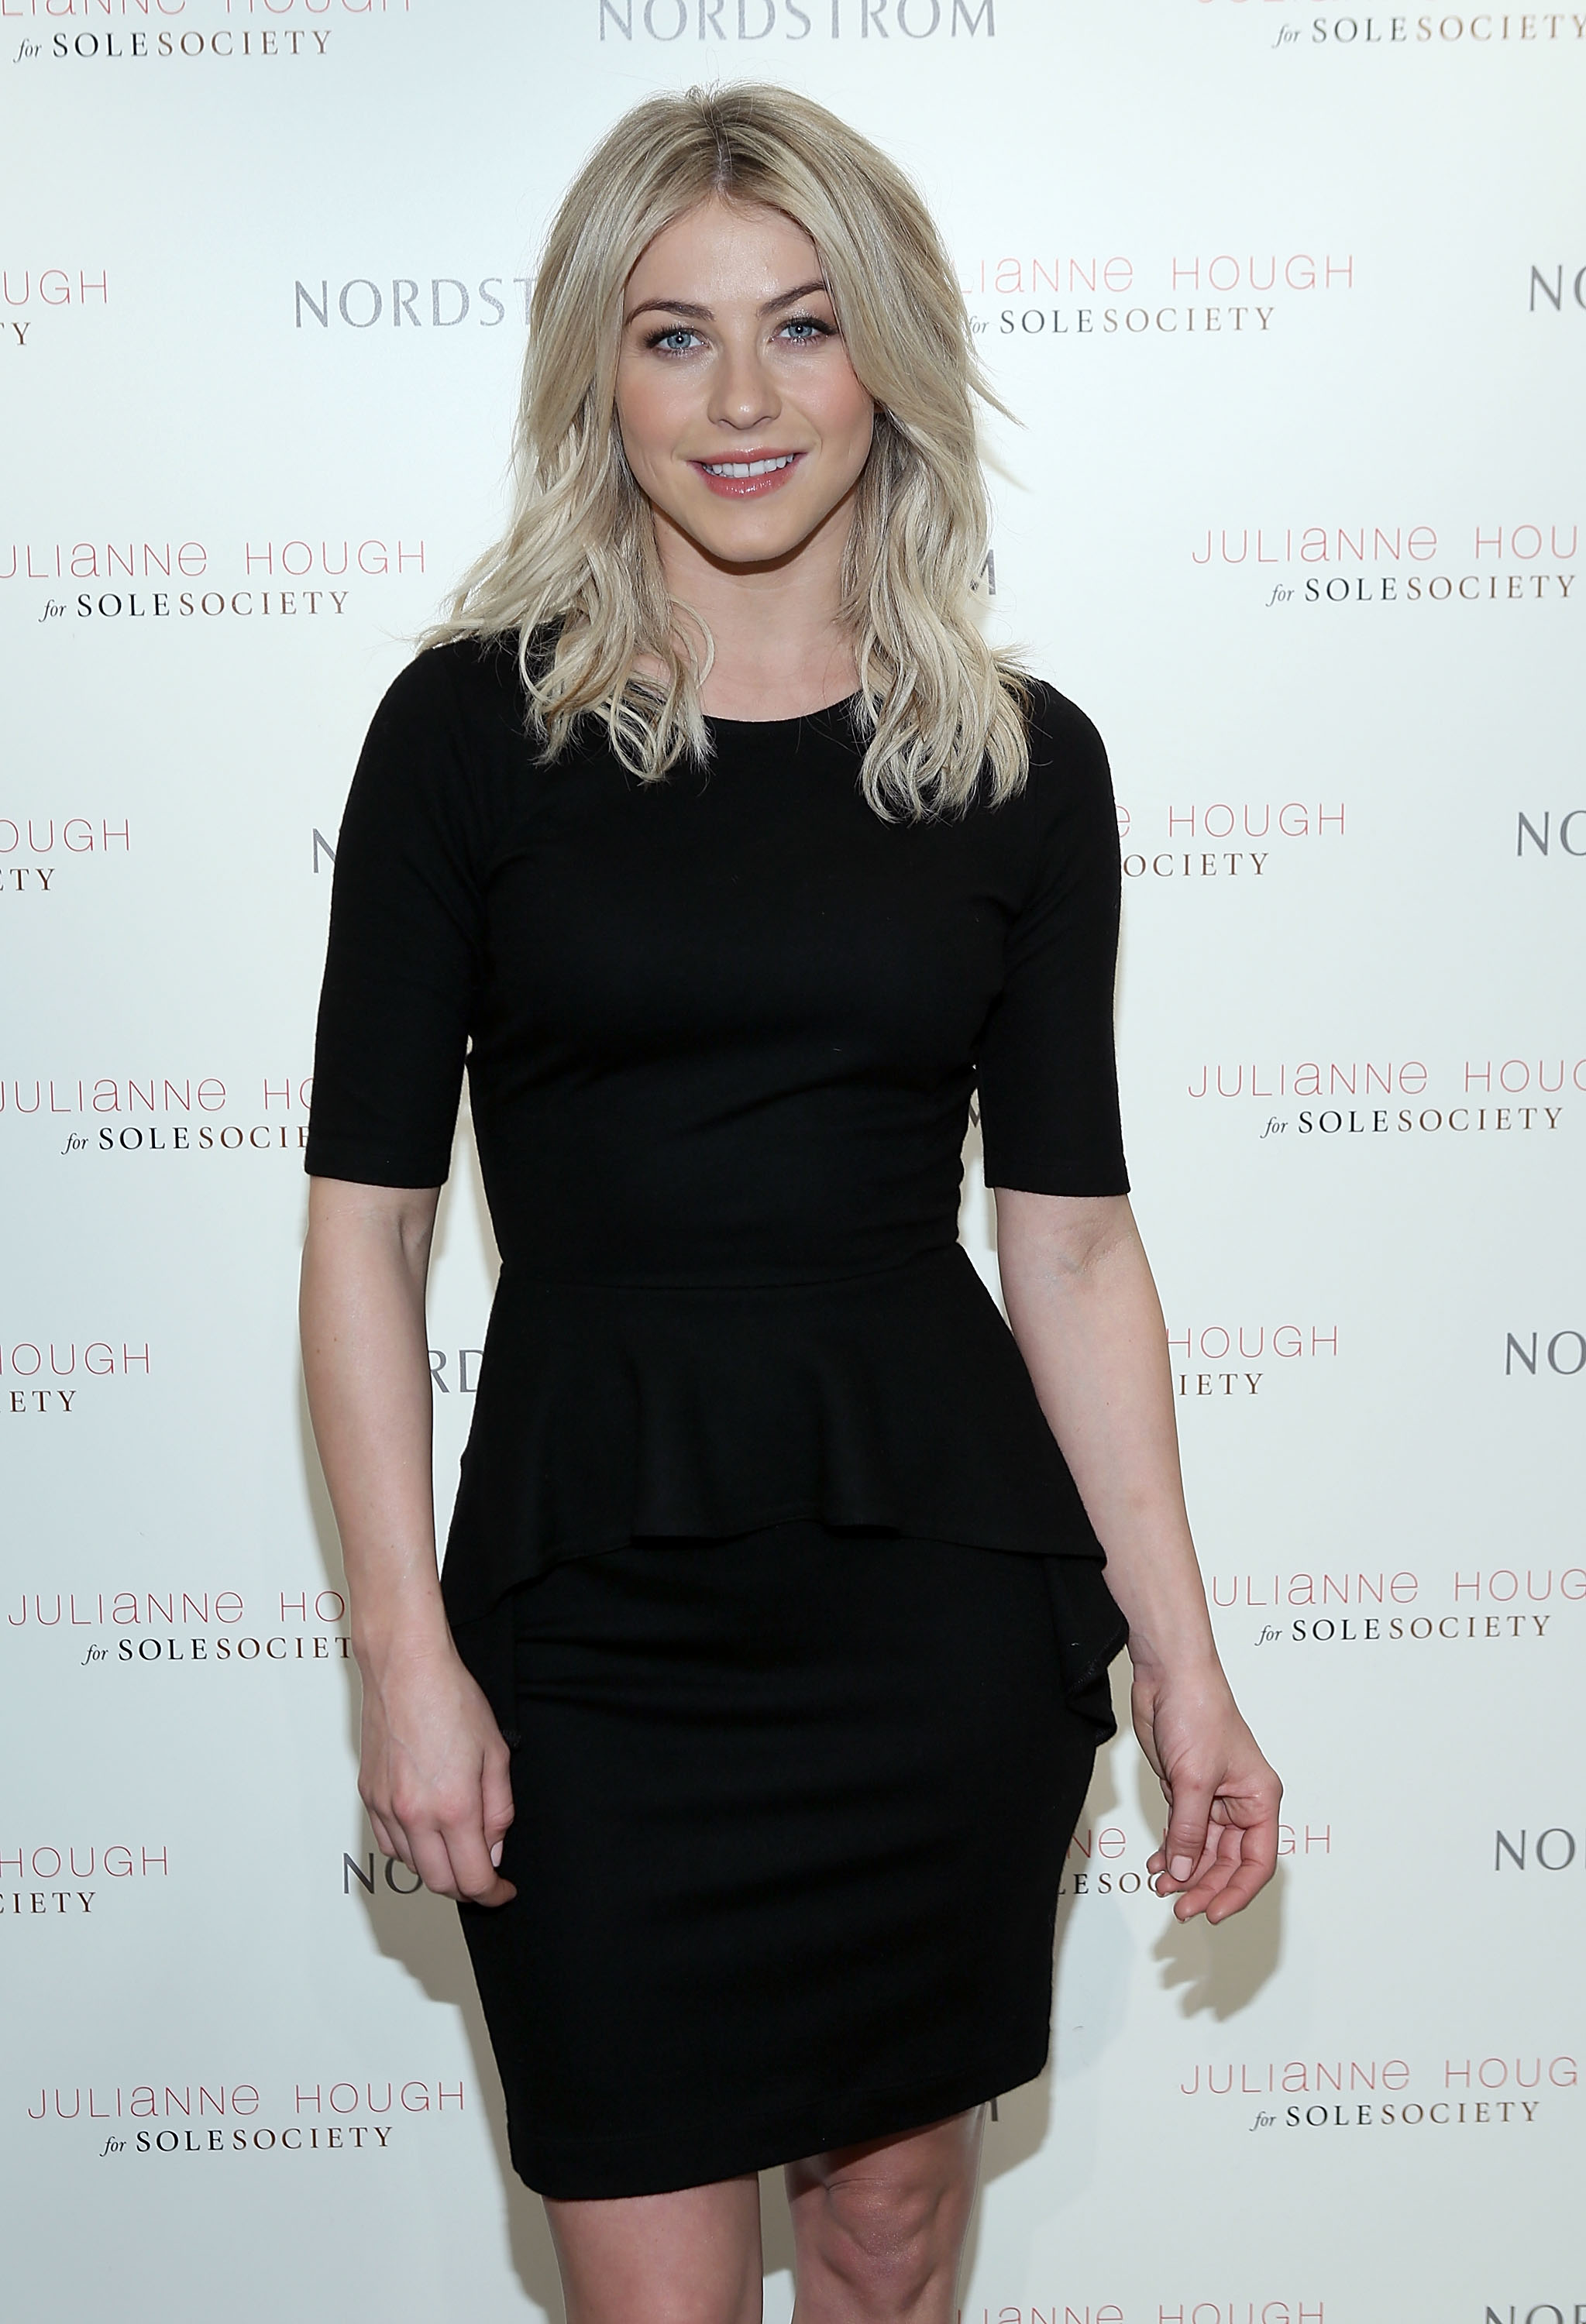 Julianne Hough Presents The Julianne Hough For Sole Society Collection At Nordstrom